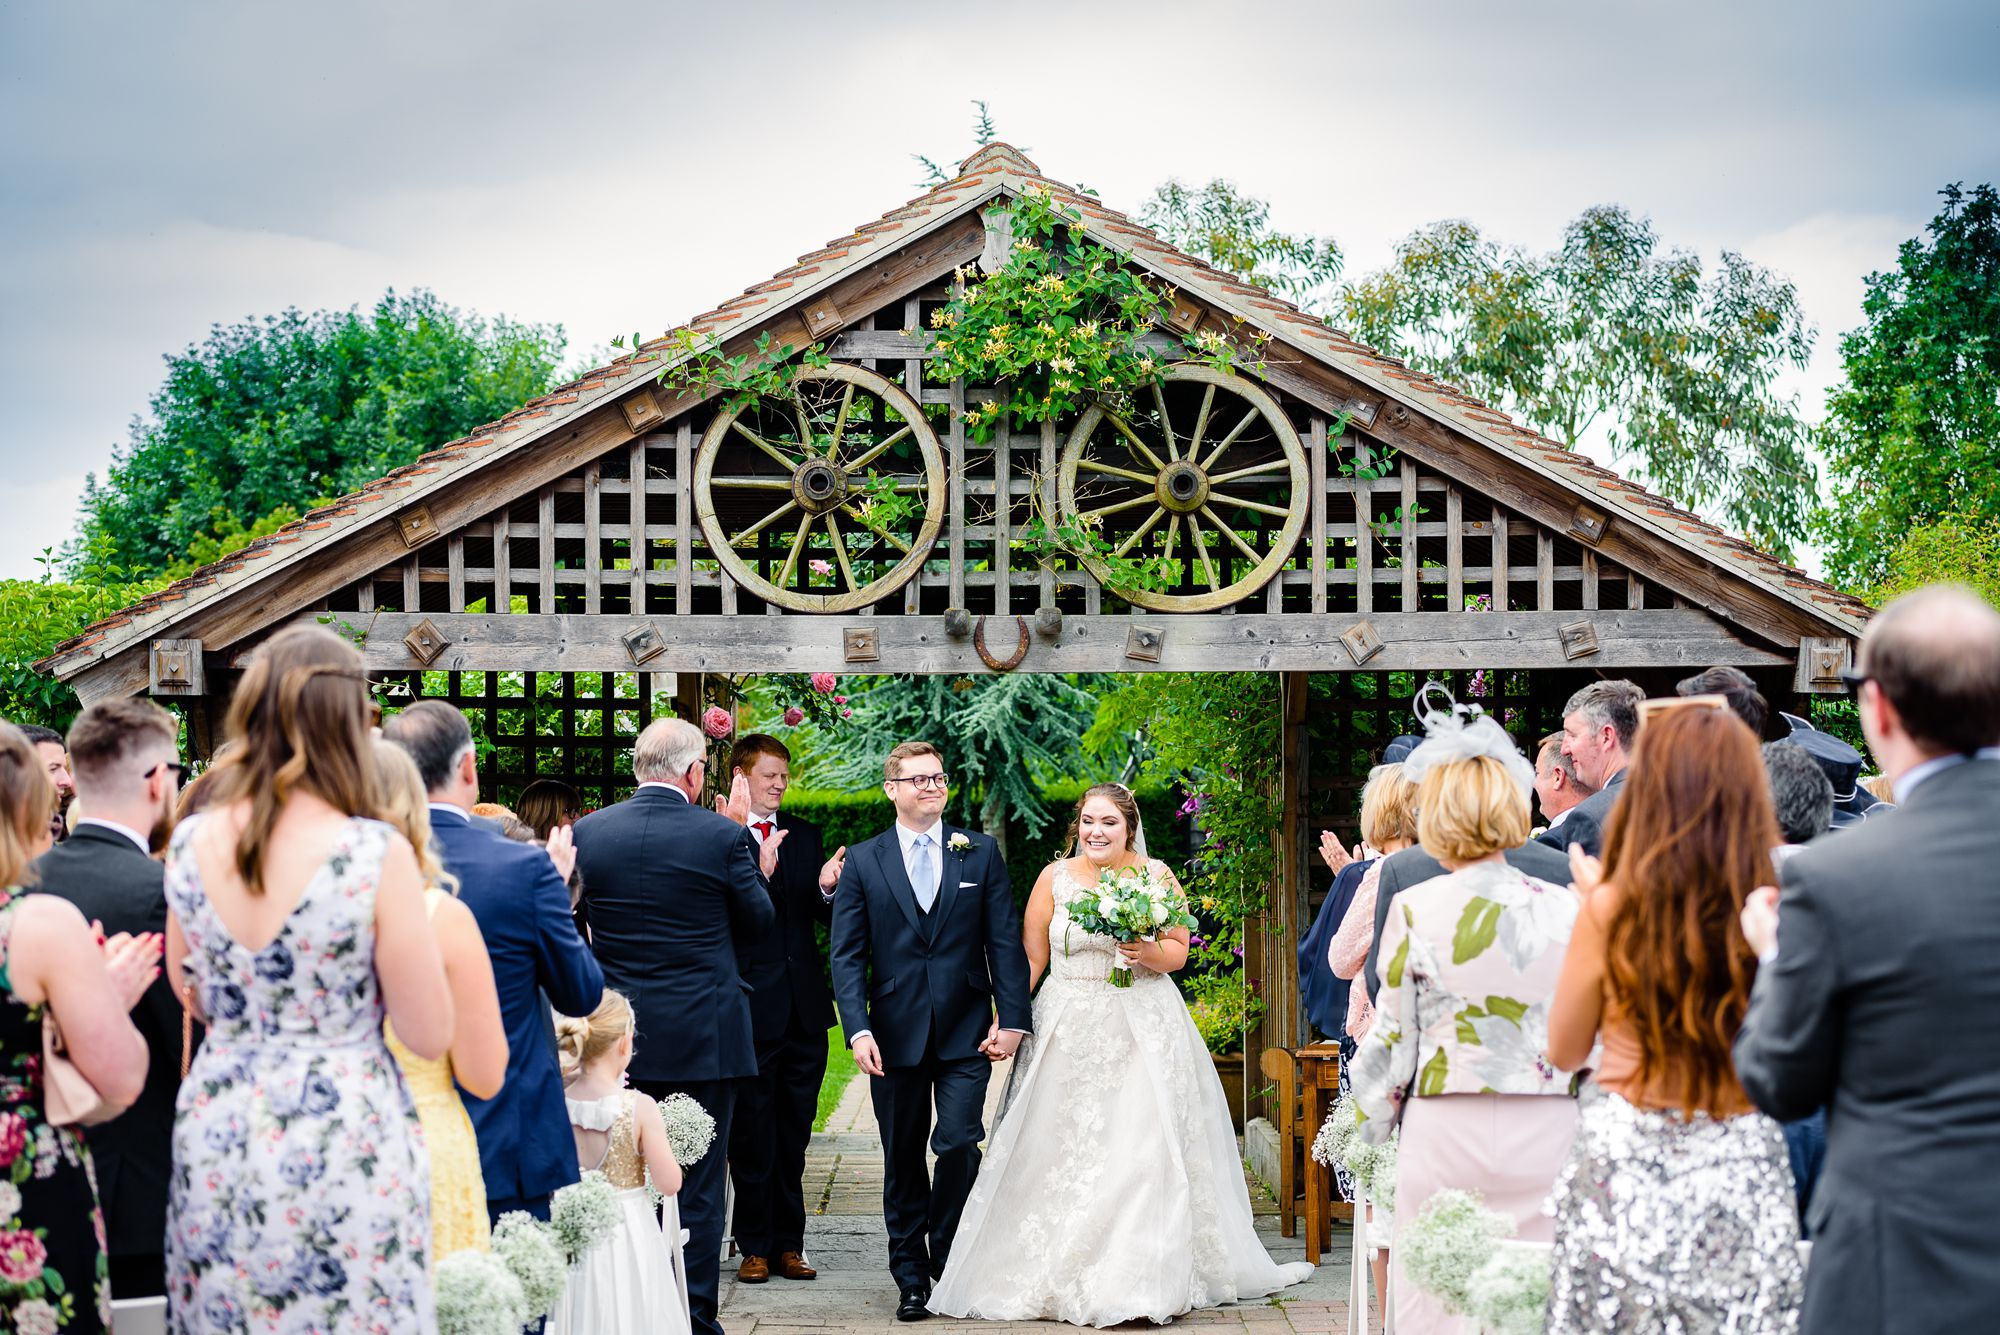 Maidens-Barn-Essex-Wedding-Photographer_0041.jpg